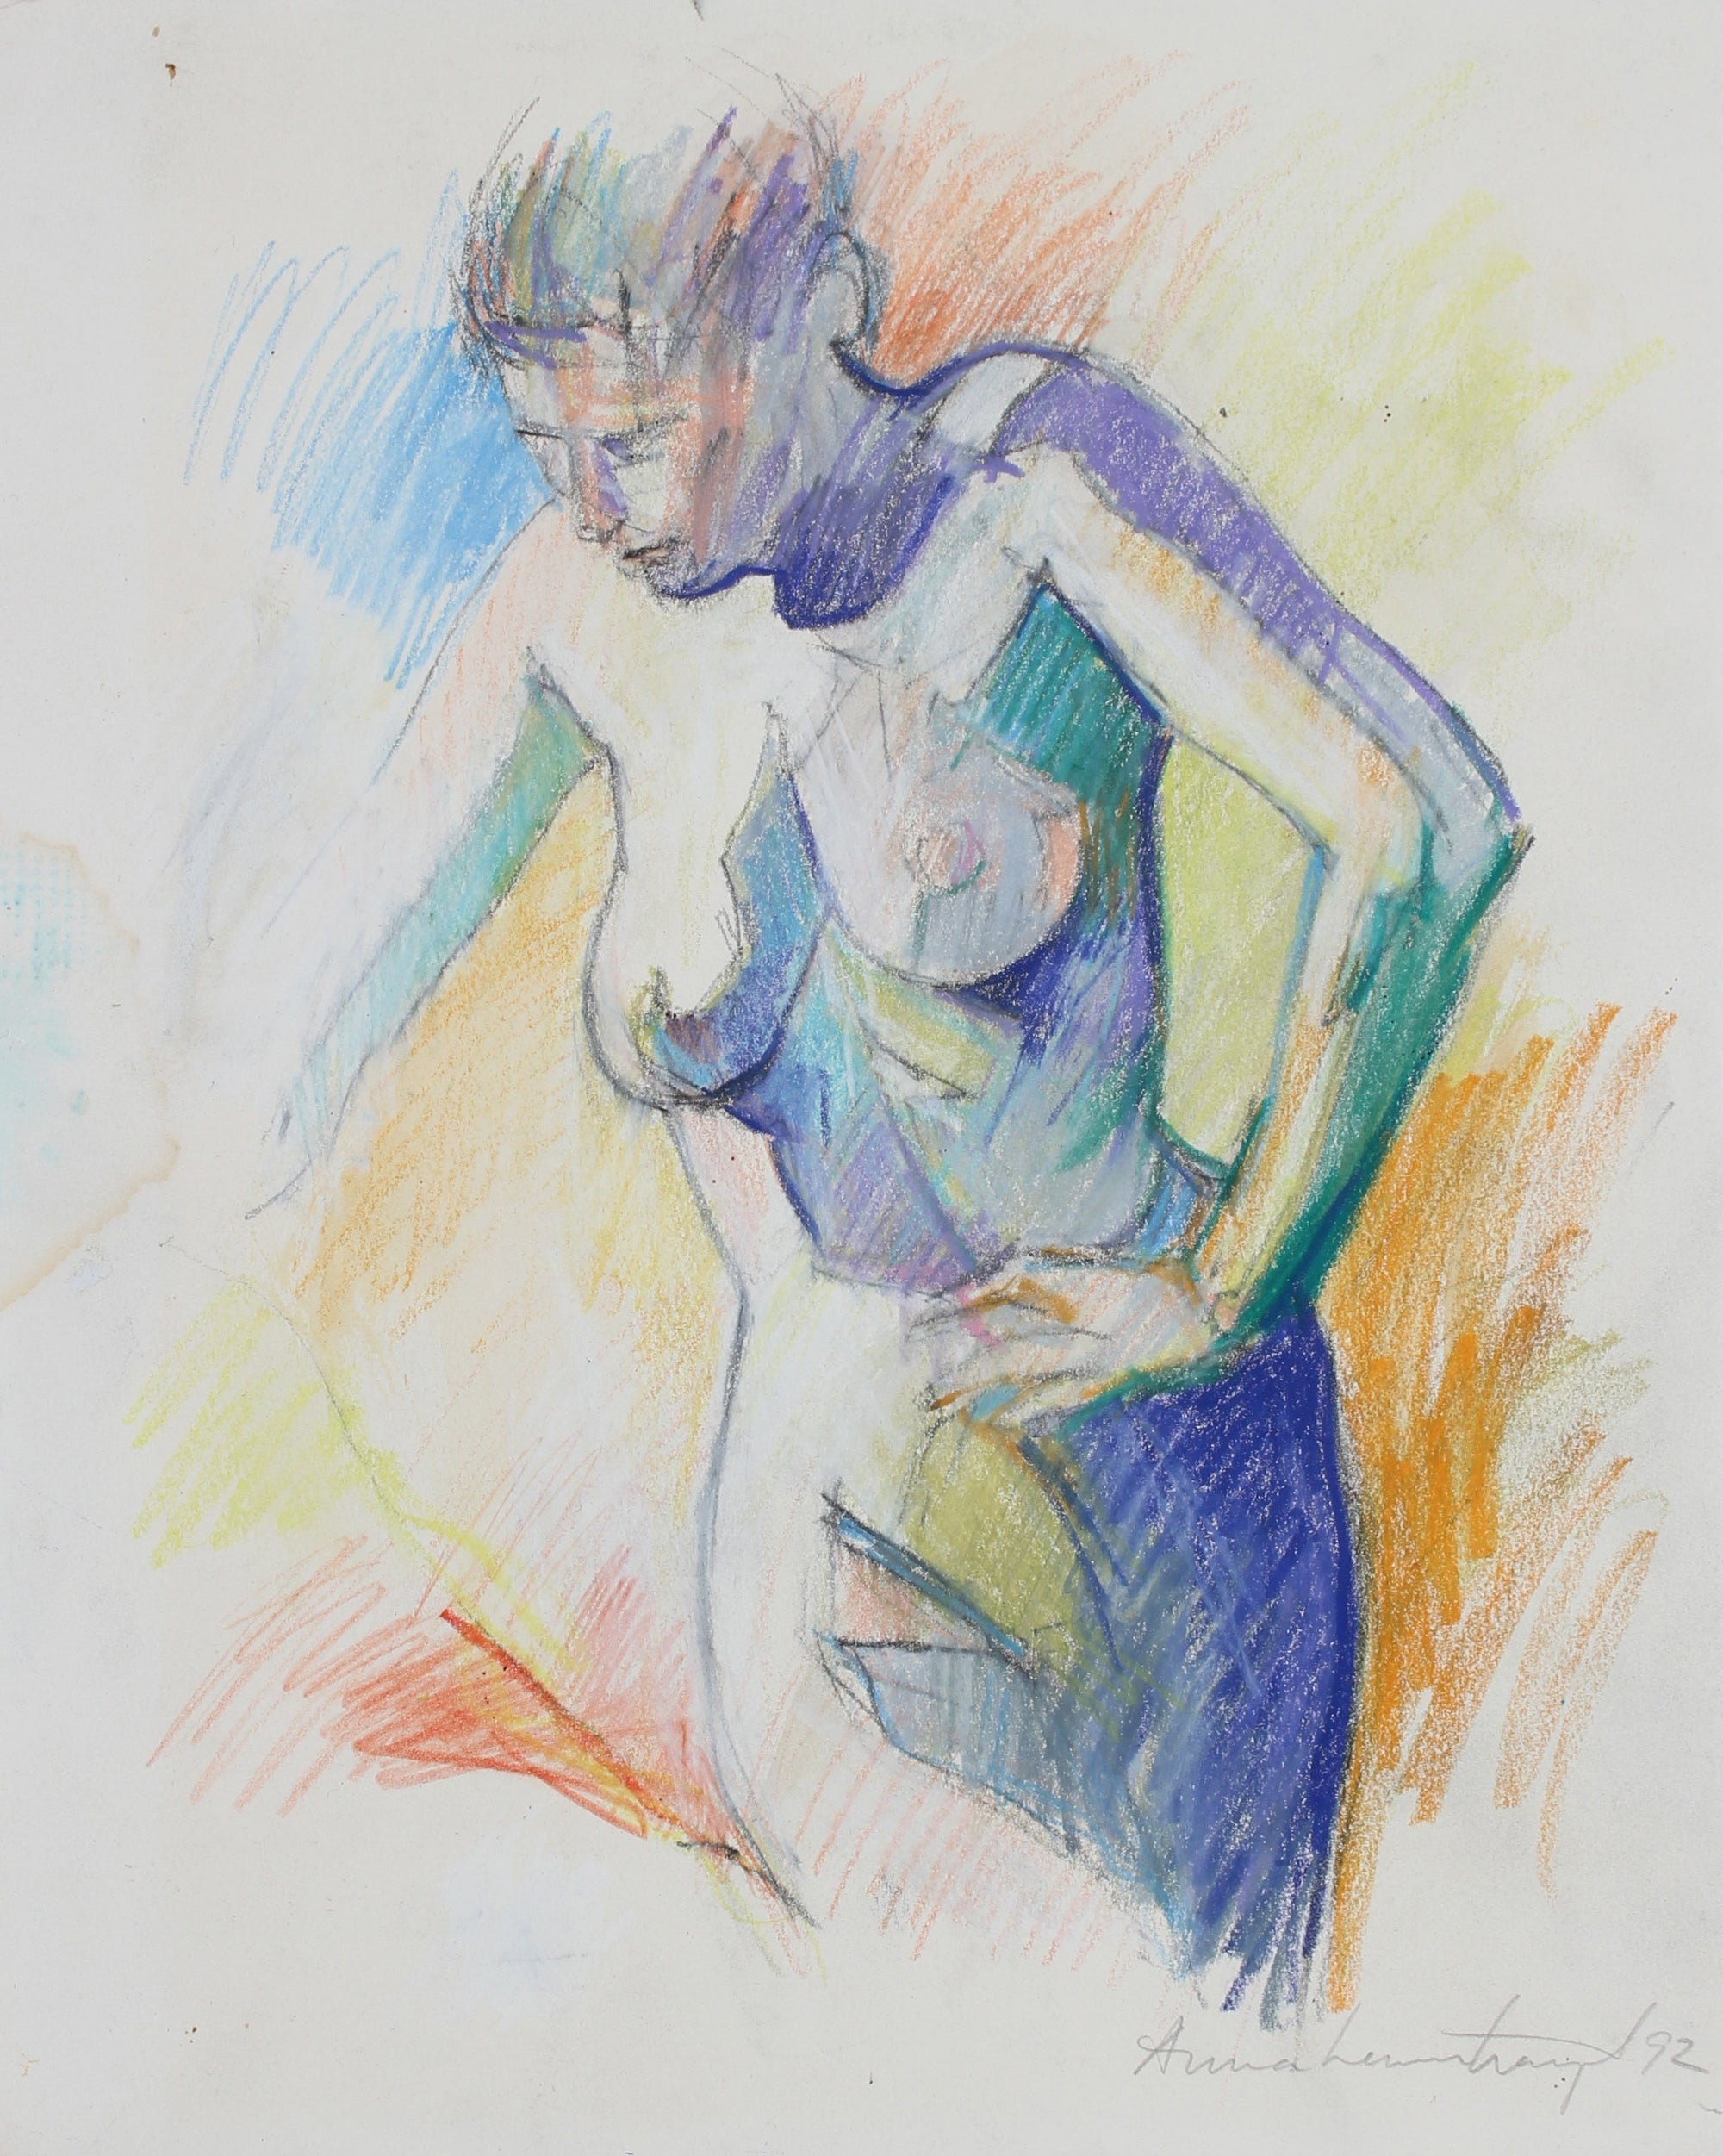 Colorful Female Nude Drawing <br>1992 Oil Pastel & Graphite <br><br>#99144